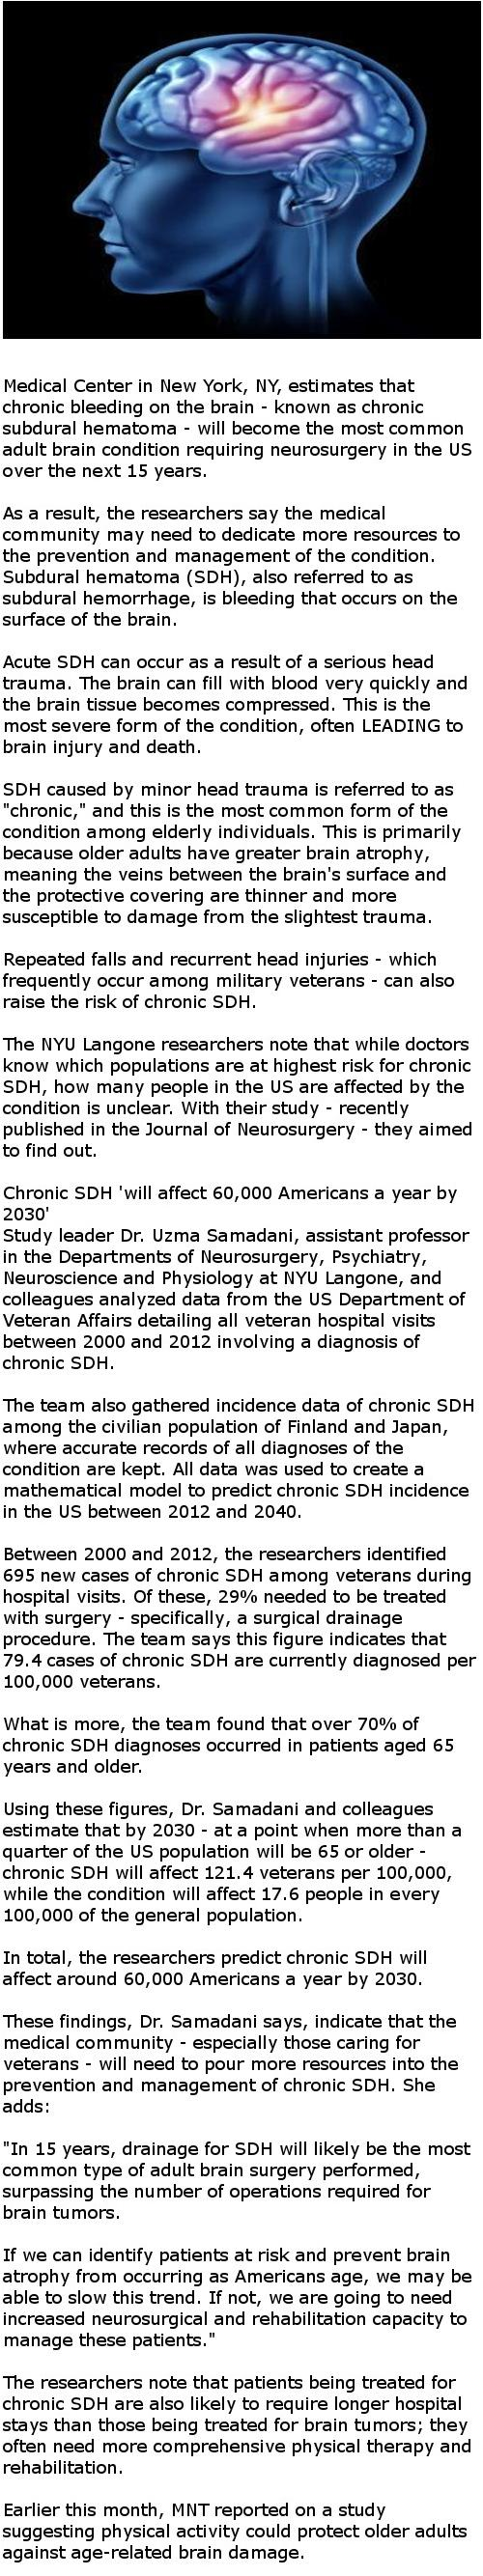 Study warns of increasing incidence of brain bleeds in US population over next 15 years